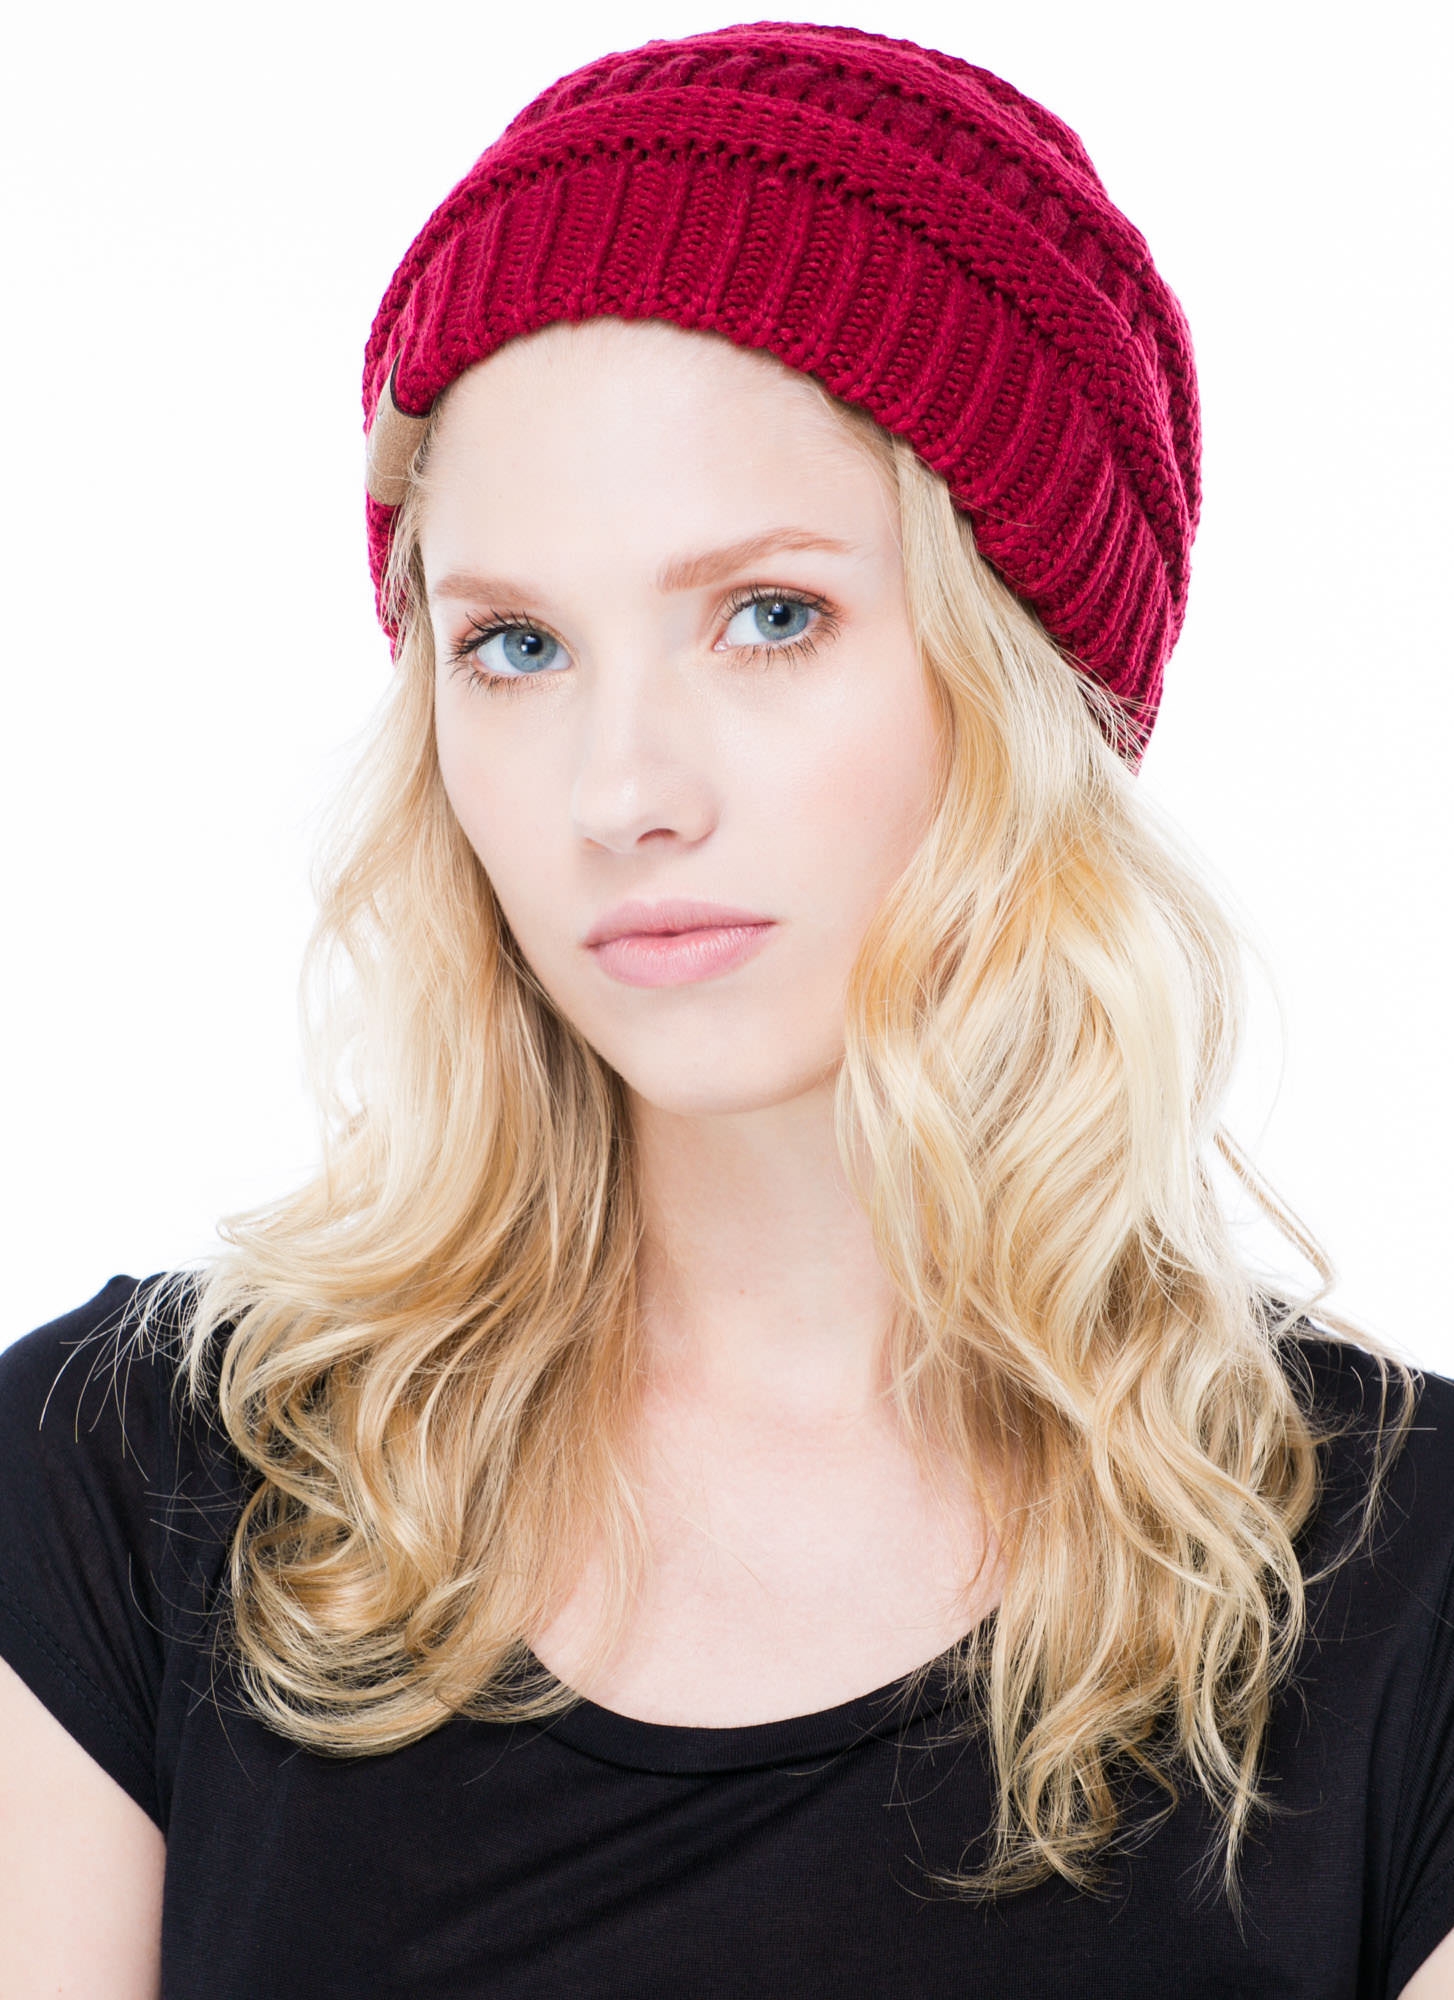 Cozy CC Cable Knit Beanie BURGUNDY (Final Sale)